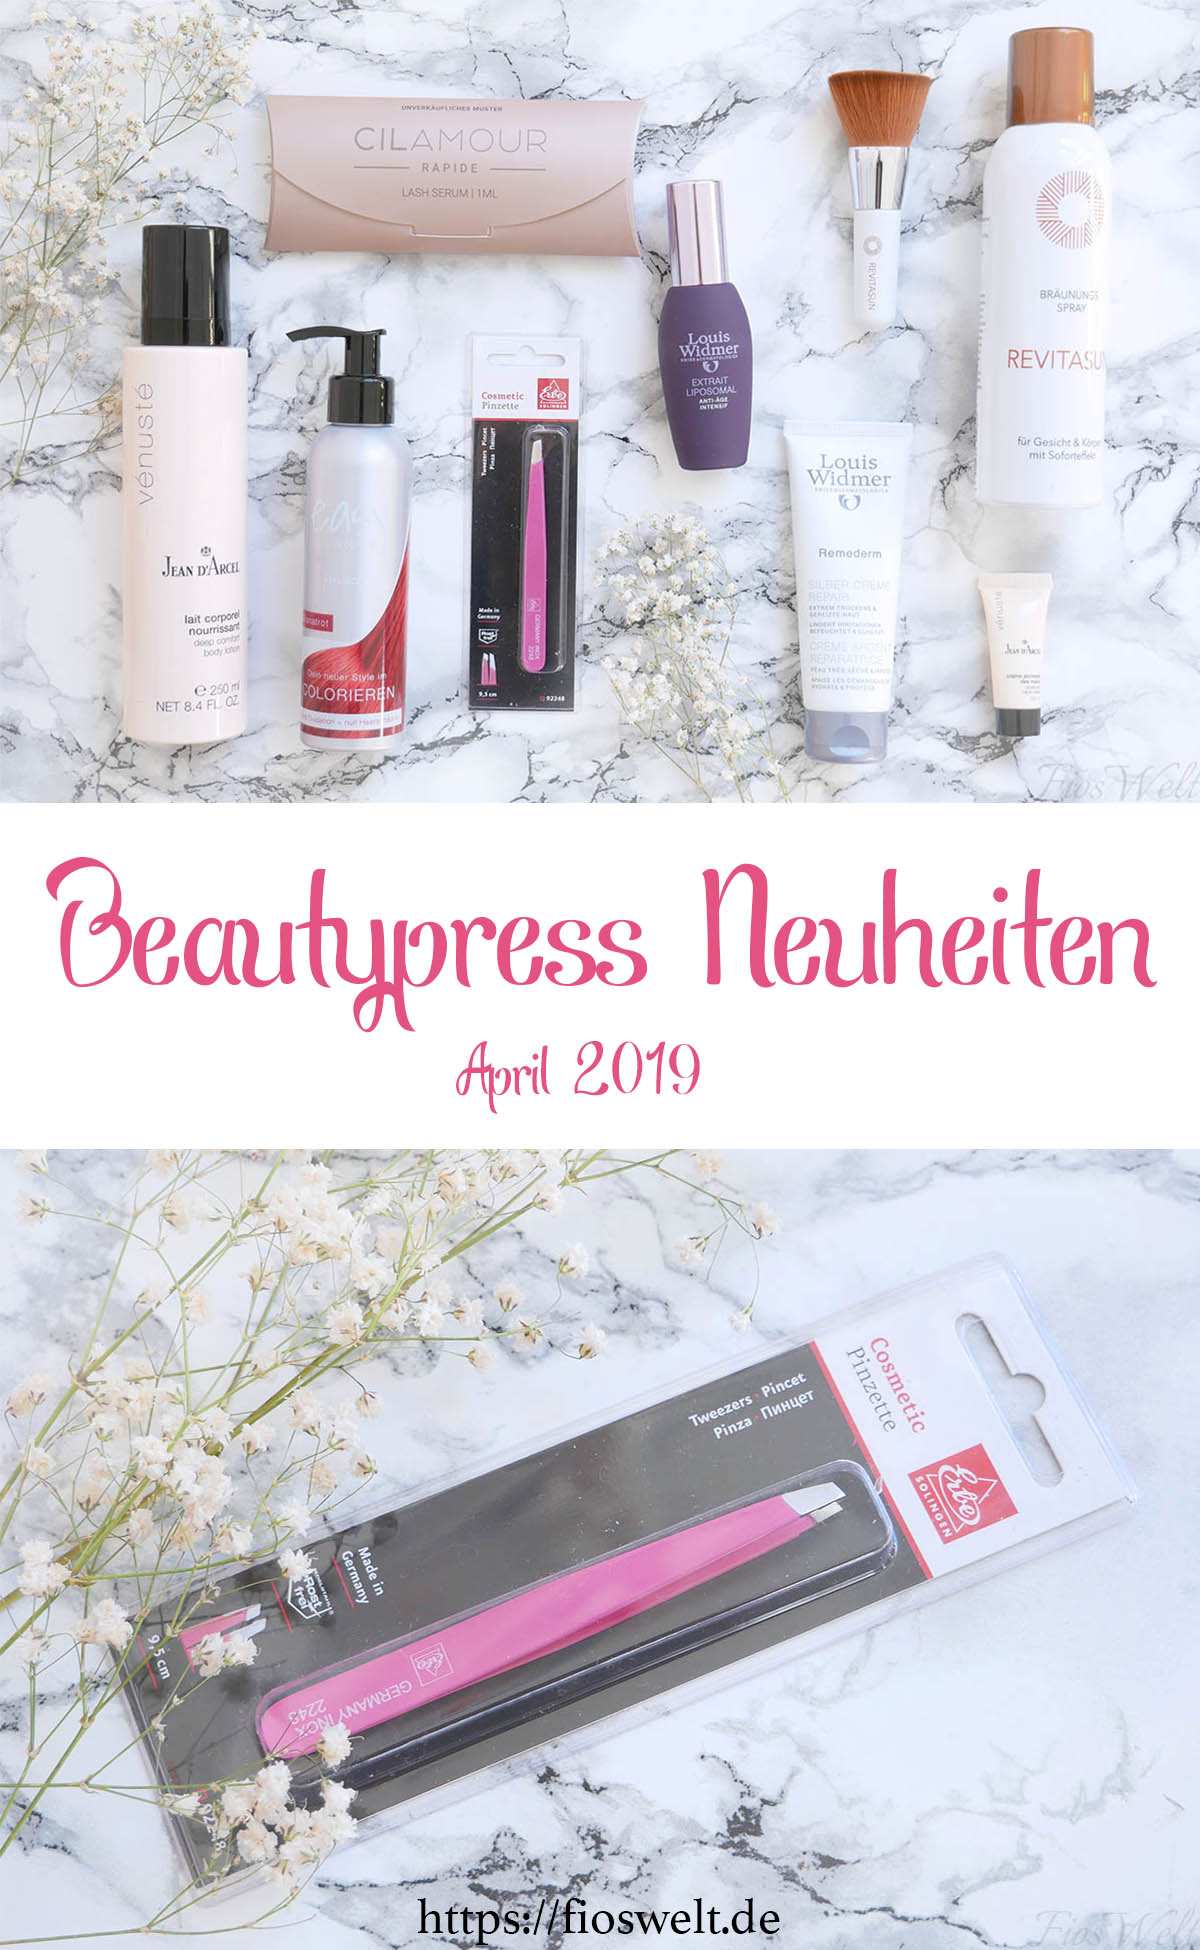 Beautypress Neuheiten April Pinterest